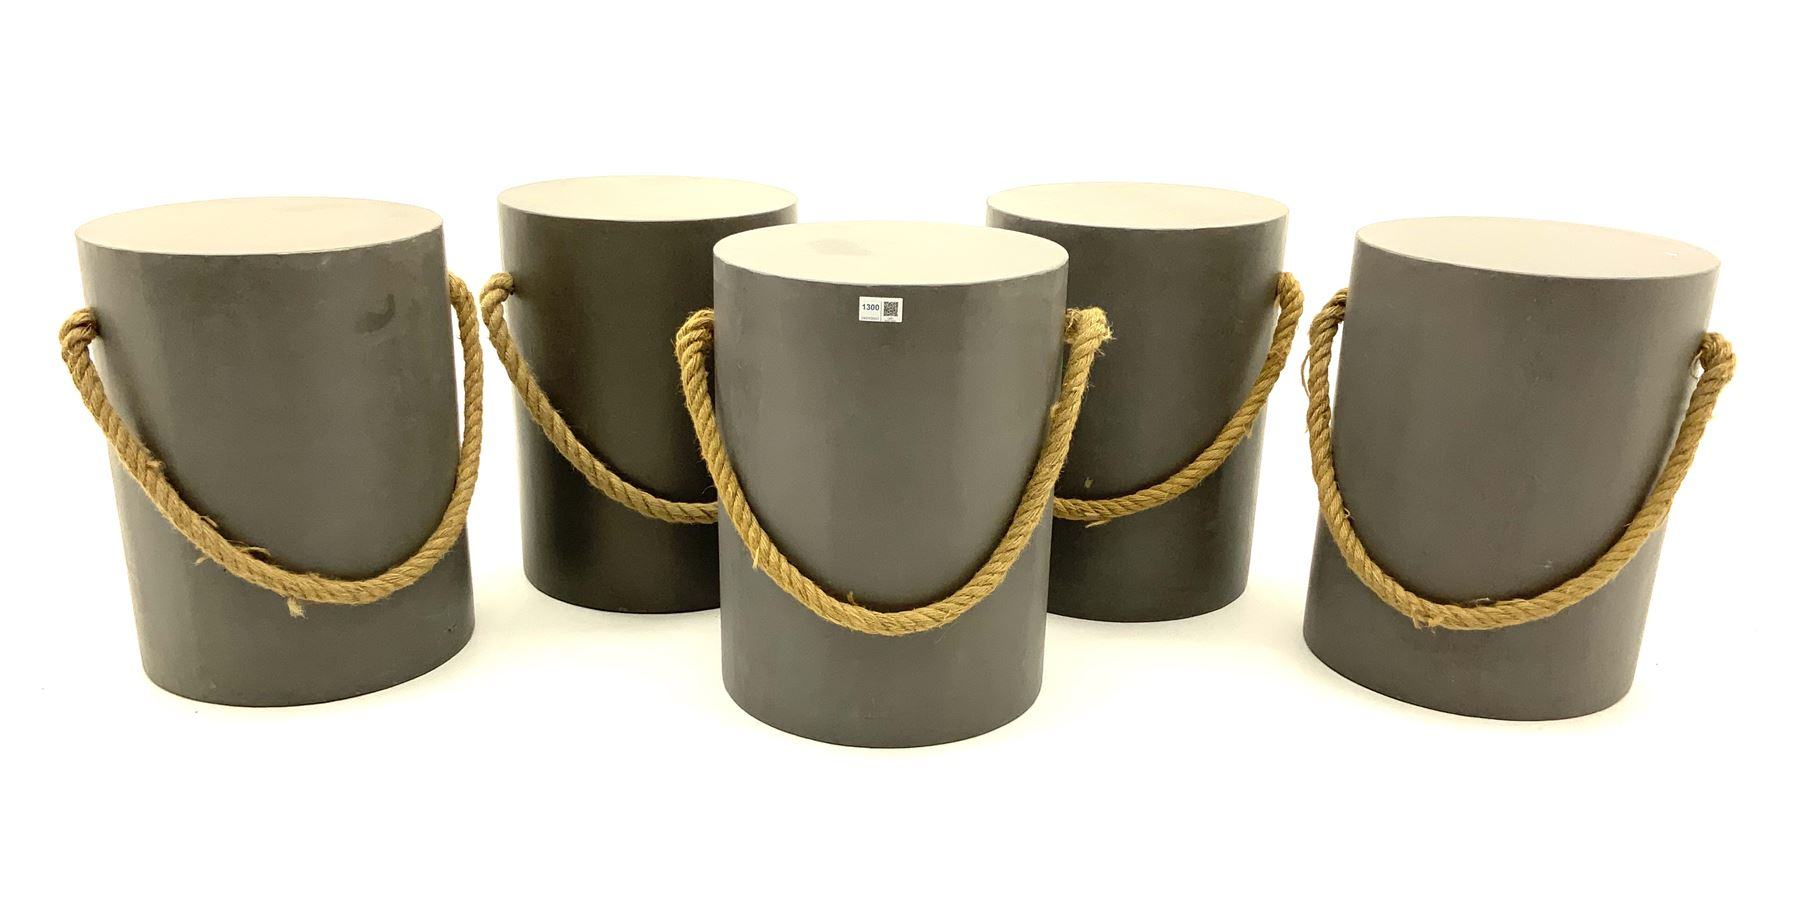 Five painted wood circular stools with rope detail